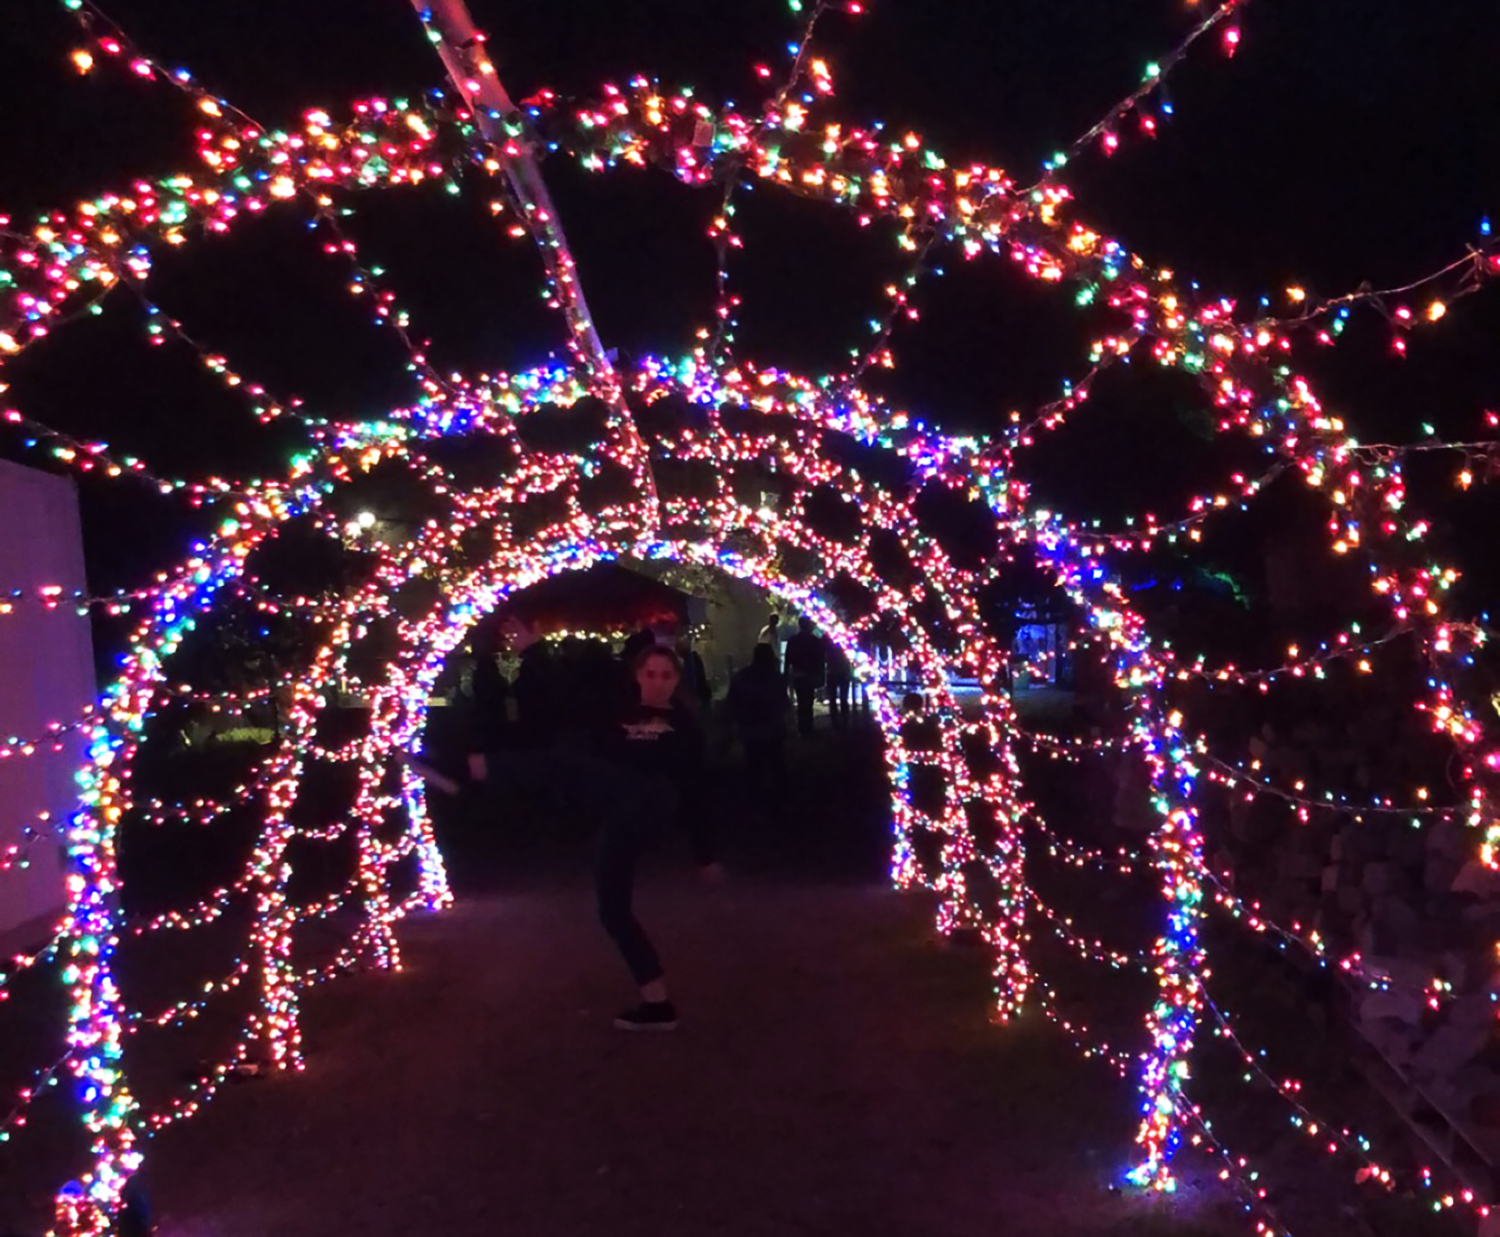 Columnist Grace Wilson frolics through a tunnel of lights at the entrance of the Street Food Cinema. Street Food Cinema was launched in 2012 and has locations from King Gillette Ranch in Malibu to the LA Arboretum in Arcadia.